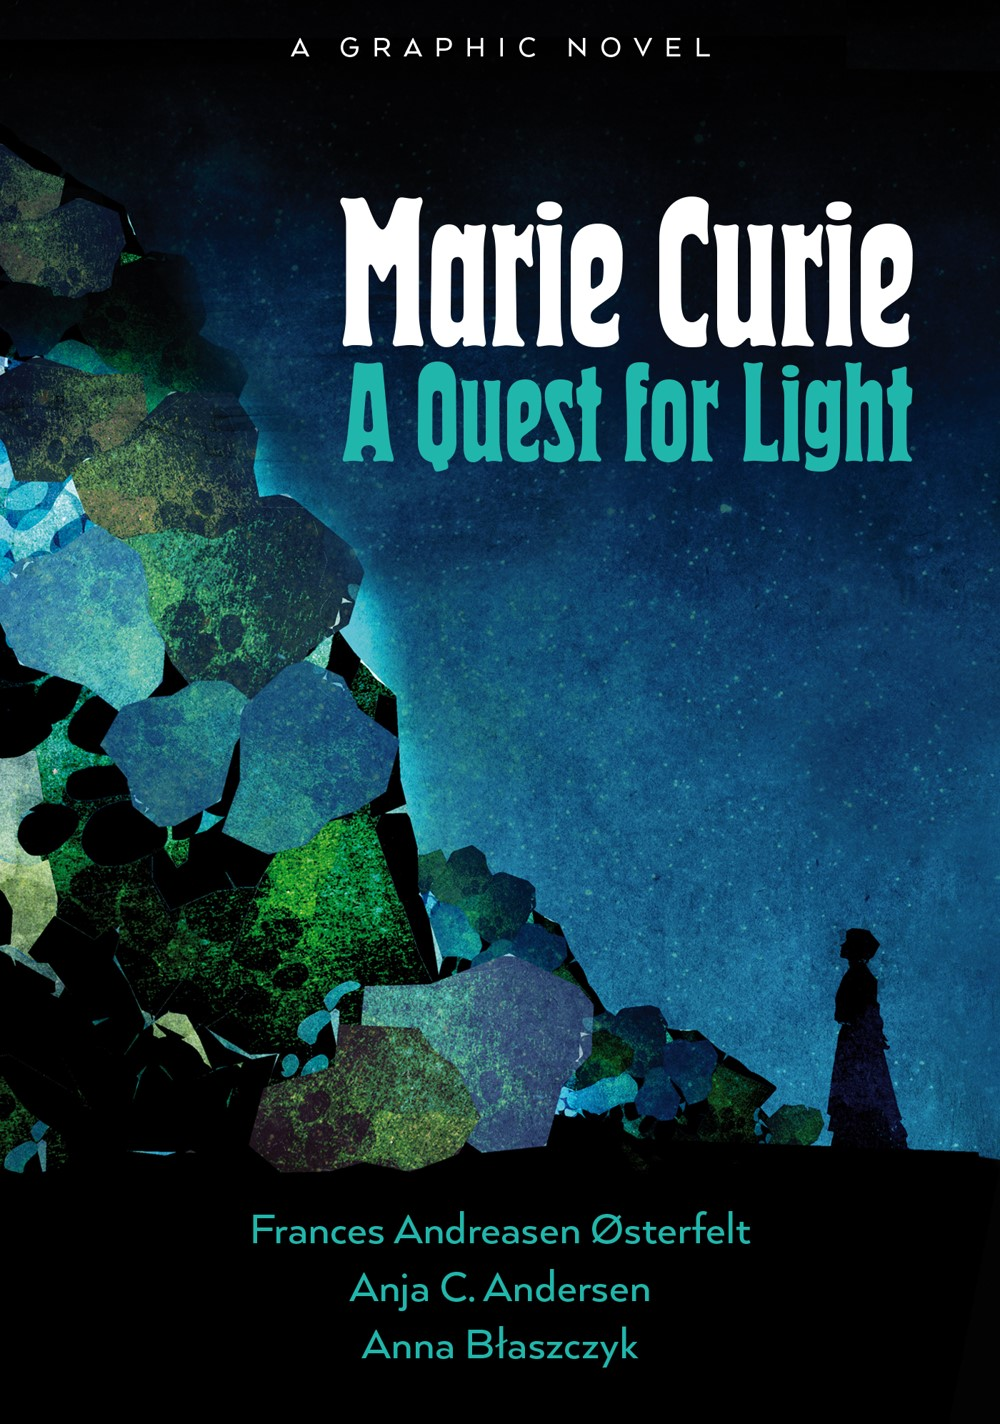 MARIE-CURIE_Cover_FPO_PRH ComicList Previews: MARIE CURIE A QUEST FOR LIGHT TP